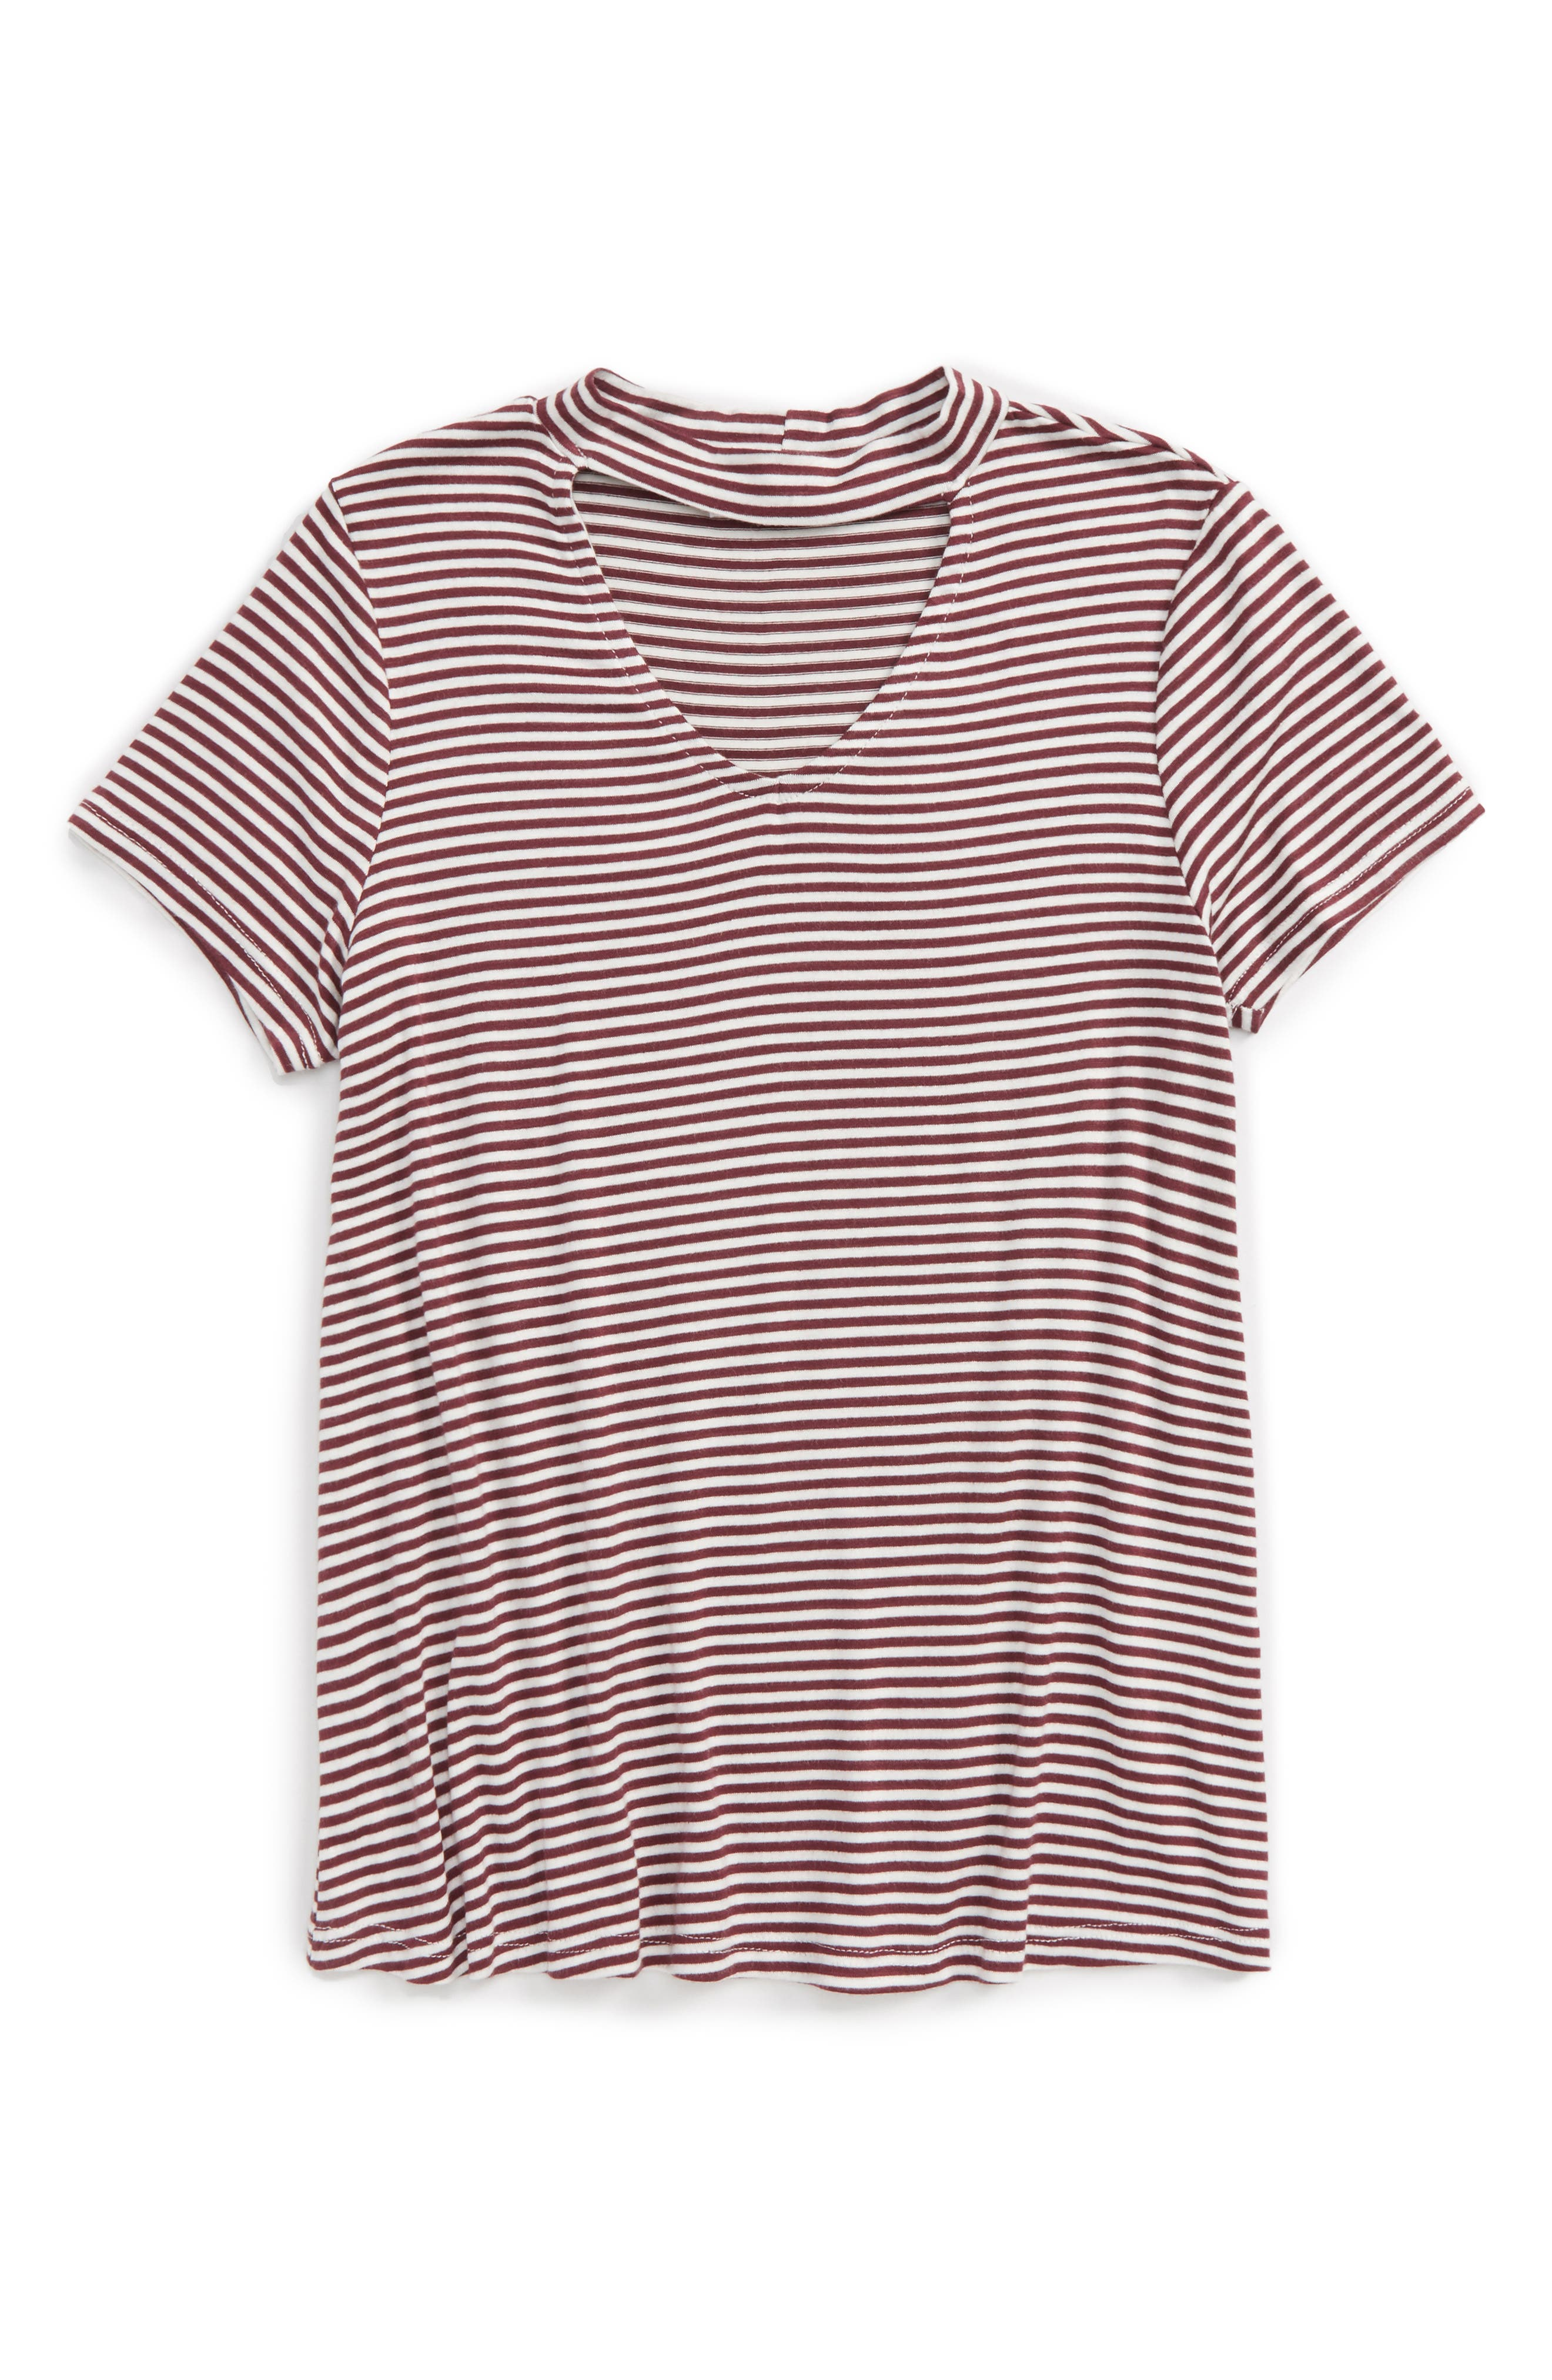 Ten Sixty Sherman Gigi Cutout Tee (Big Girls)